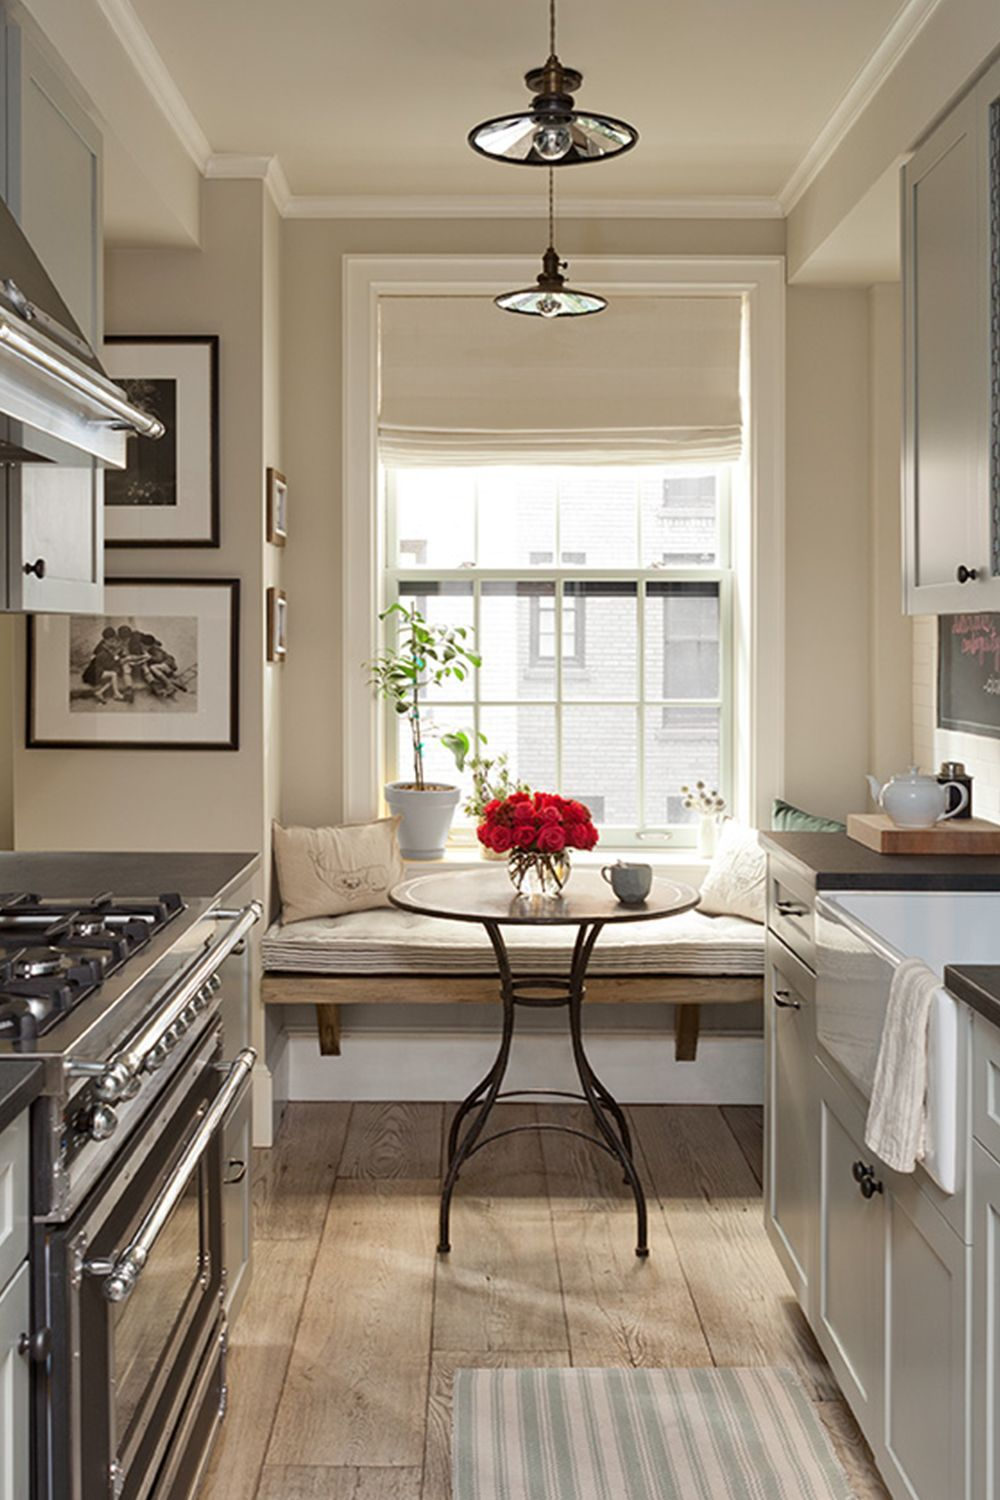 Gorgeous Eat-in Kitchens for Every Type of Home | Small ...